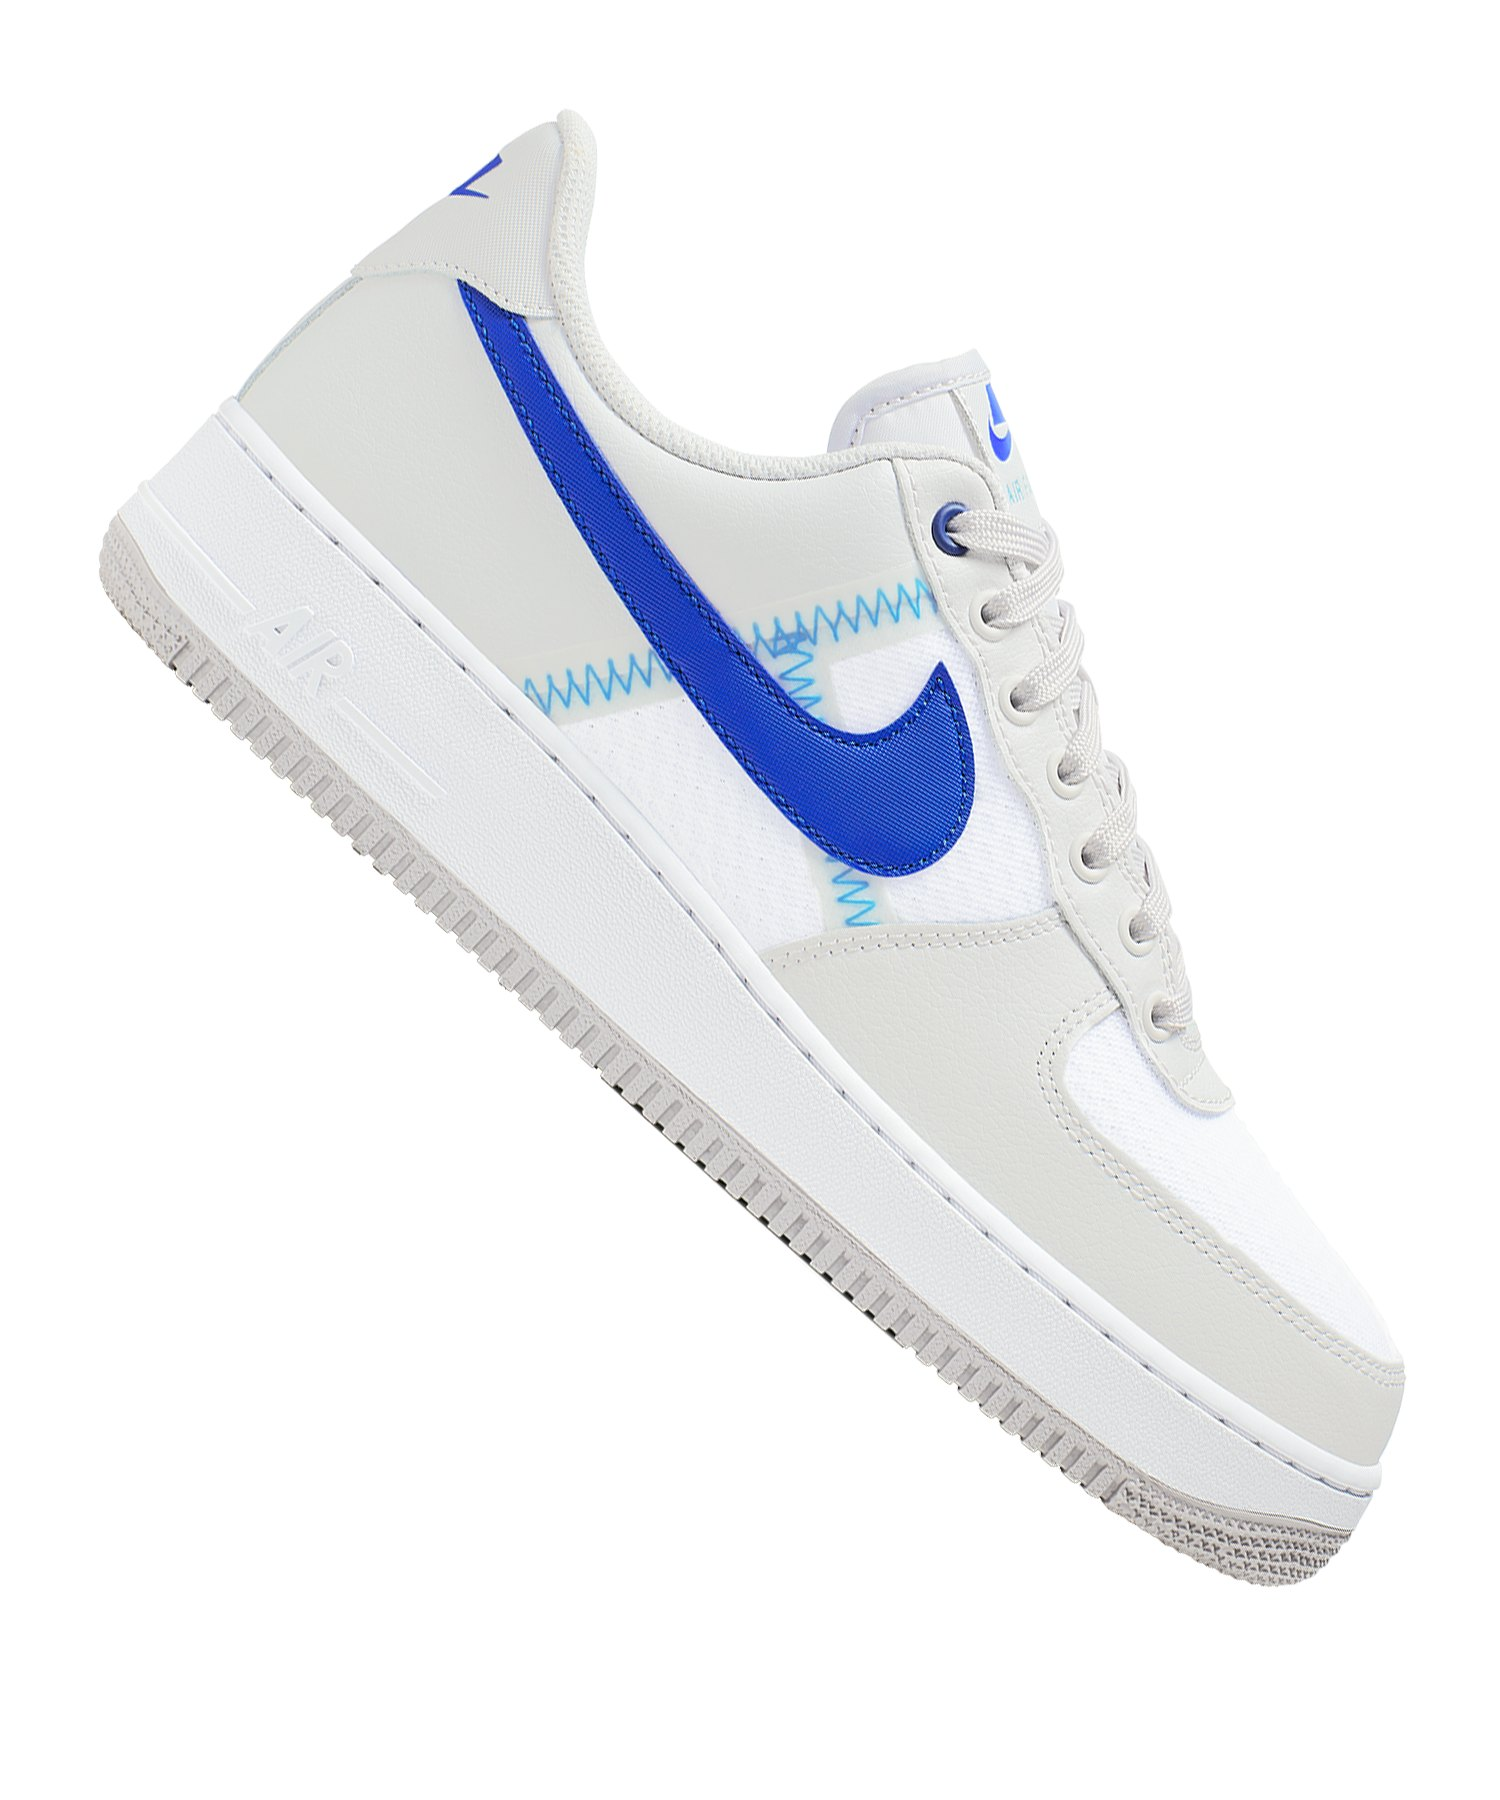 Nike Air Force 1 07 LV8 1 Sneaker Grau Blau F001